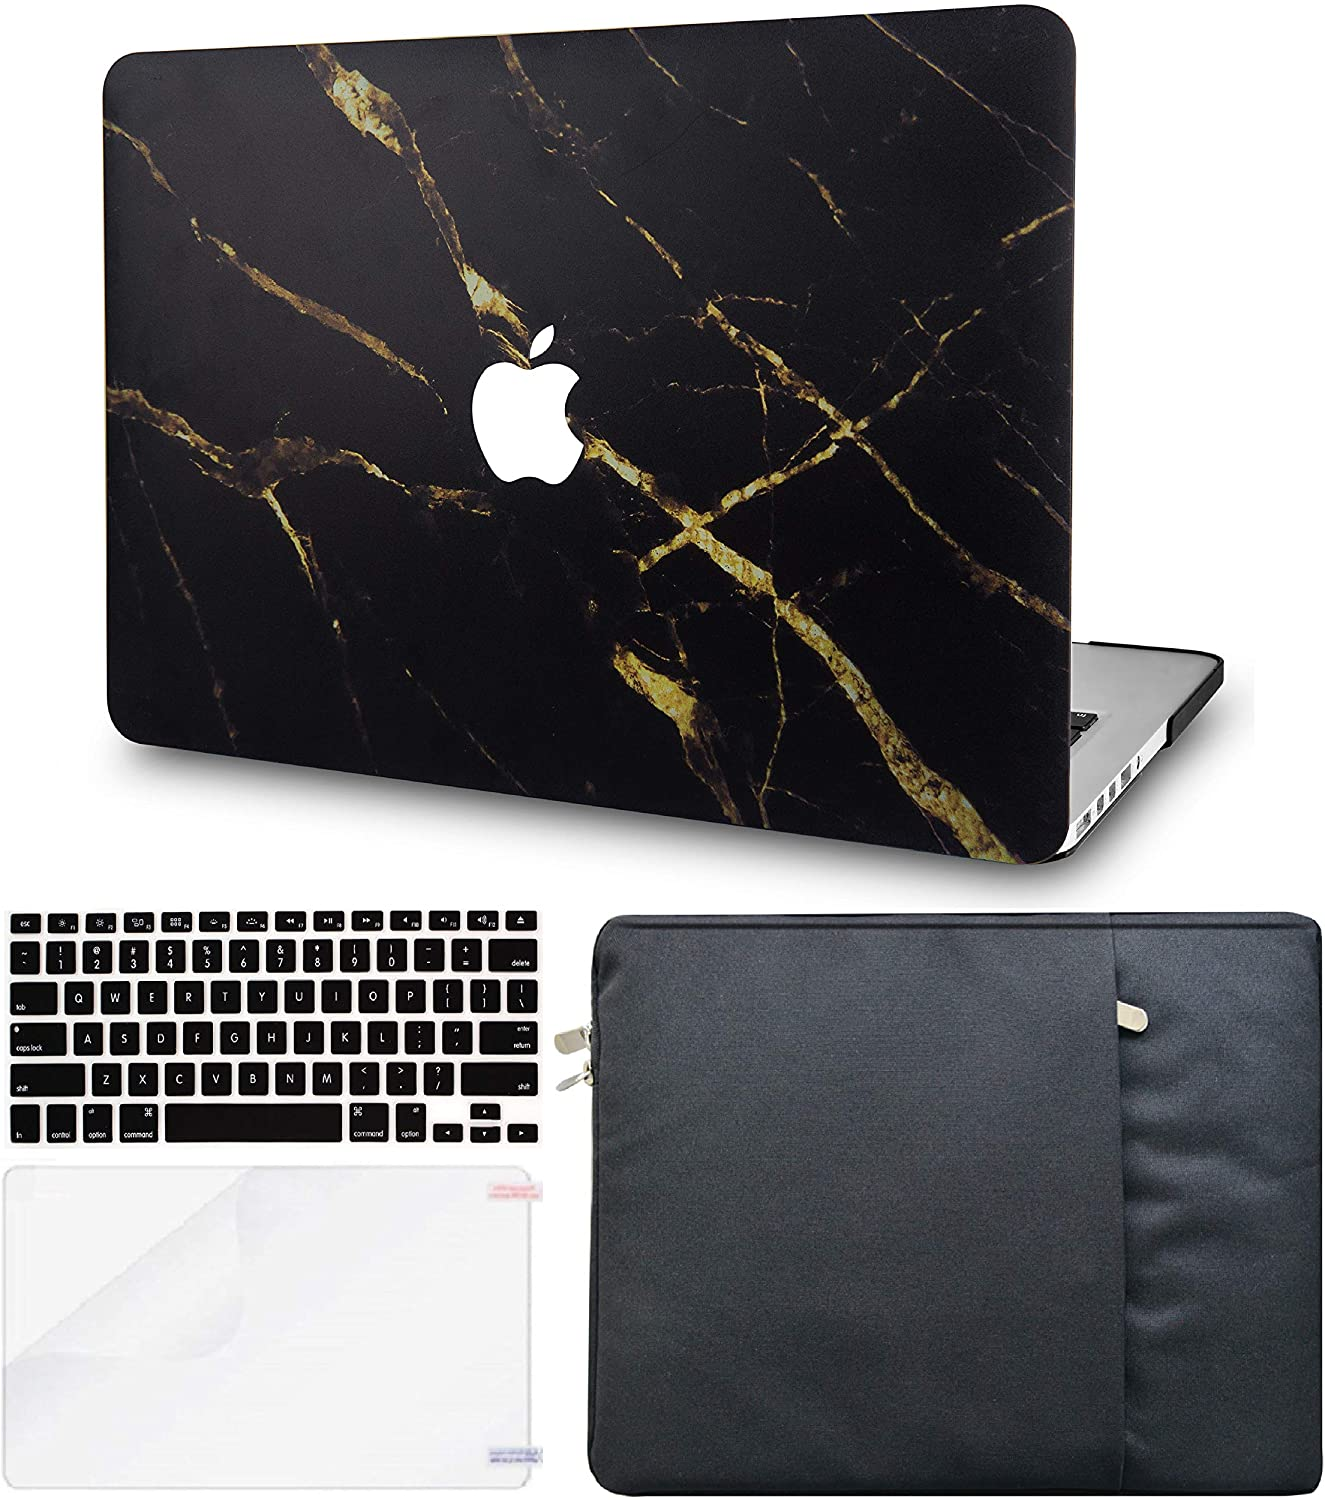 LuvCase 4in1 Laptop Case for MacBook Pro 15 Touch Bar (2019/2018/2017/2016 Release) A1990/A1707 Hard Shell Cover, Sleeve, Keyboard Cover & Screen Protector (Black Gold Marble)